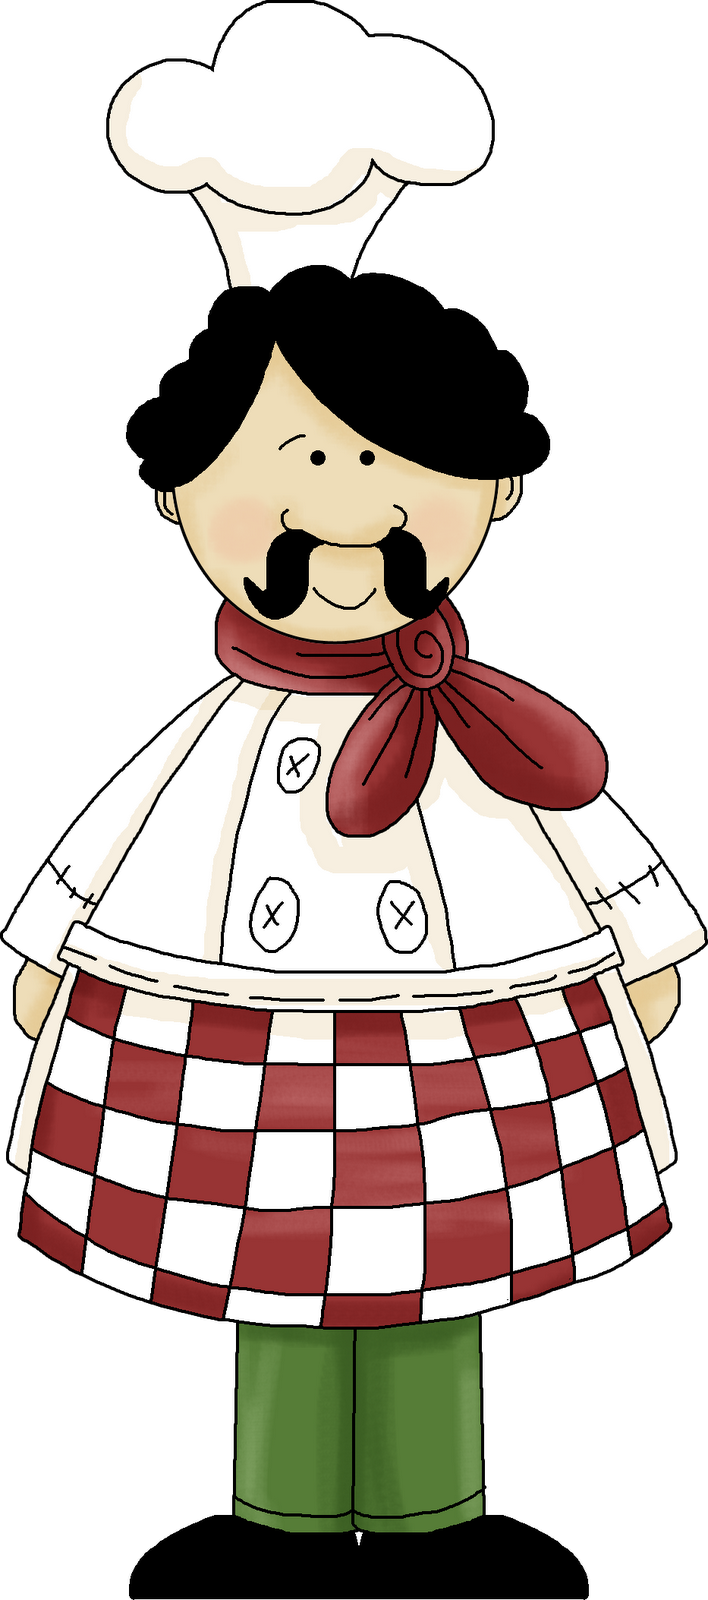 Italian Chef At Digi Web Studio By Whimsy Primsy  Isn T He Great